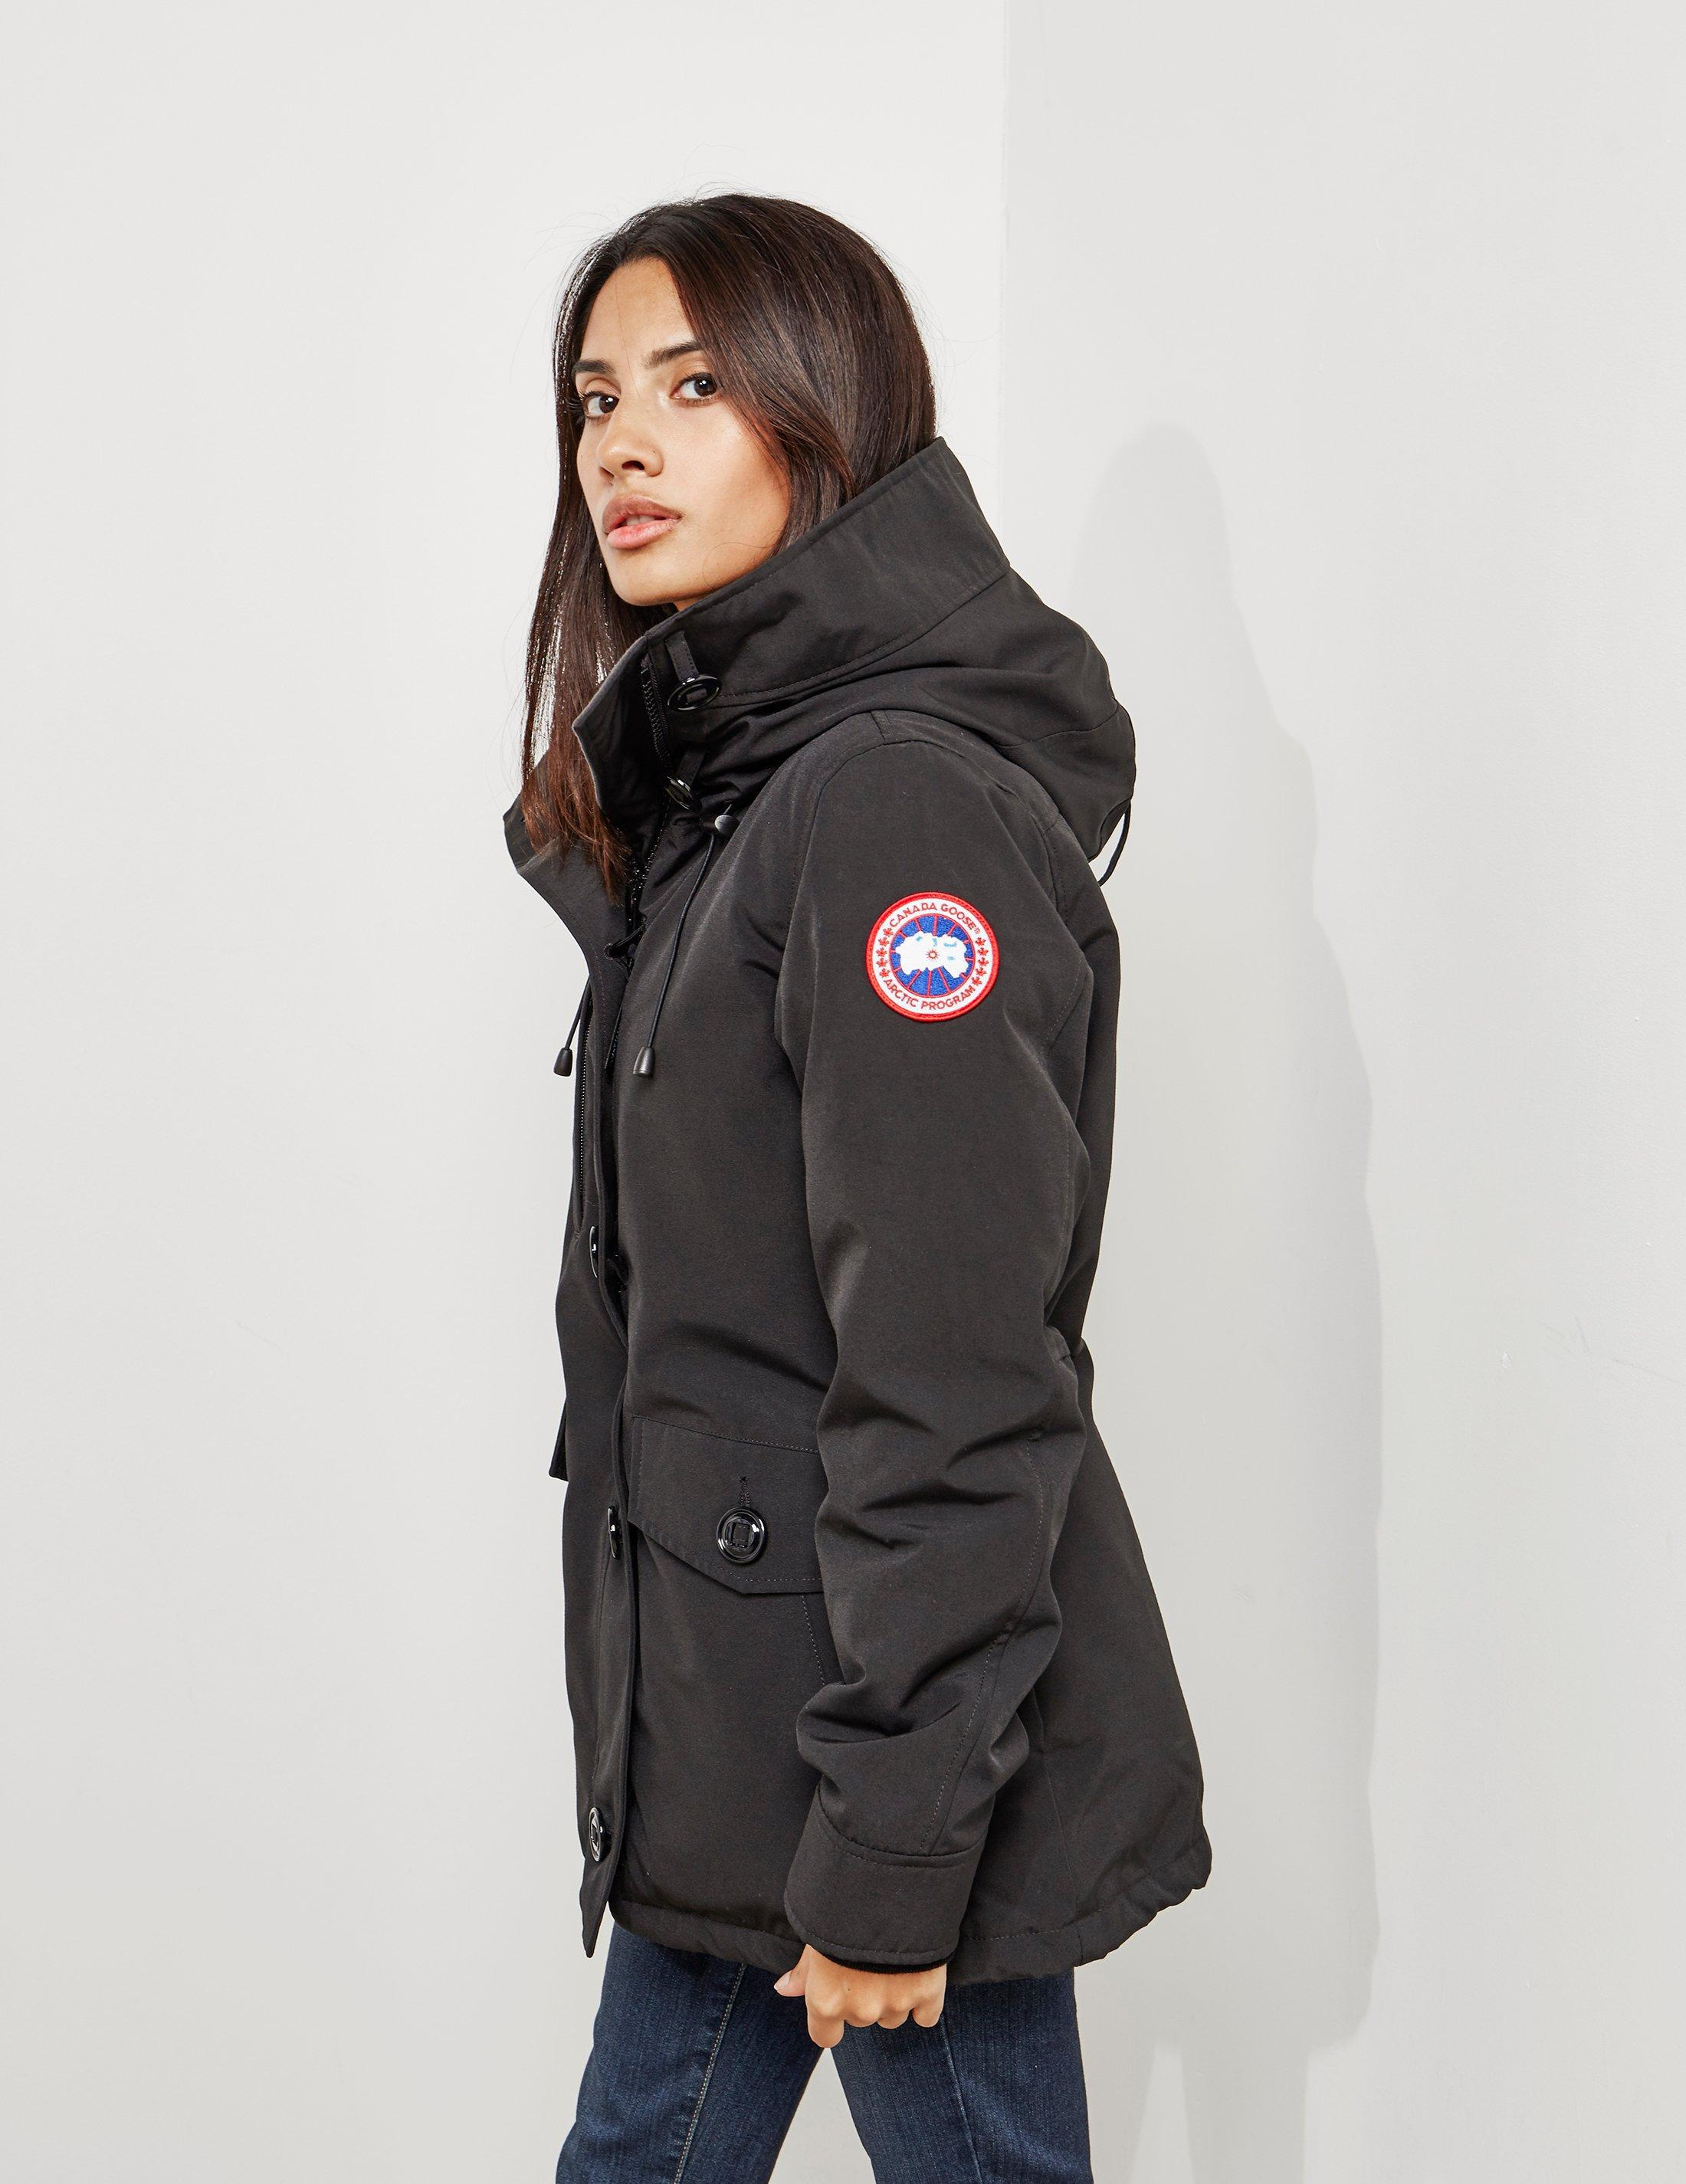 a598b38064e ... shopping lyst canada goose womens rideau padded parka jacket black in  black 9e867 bc667